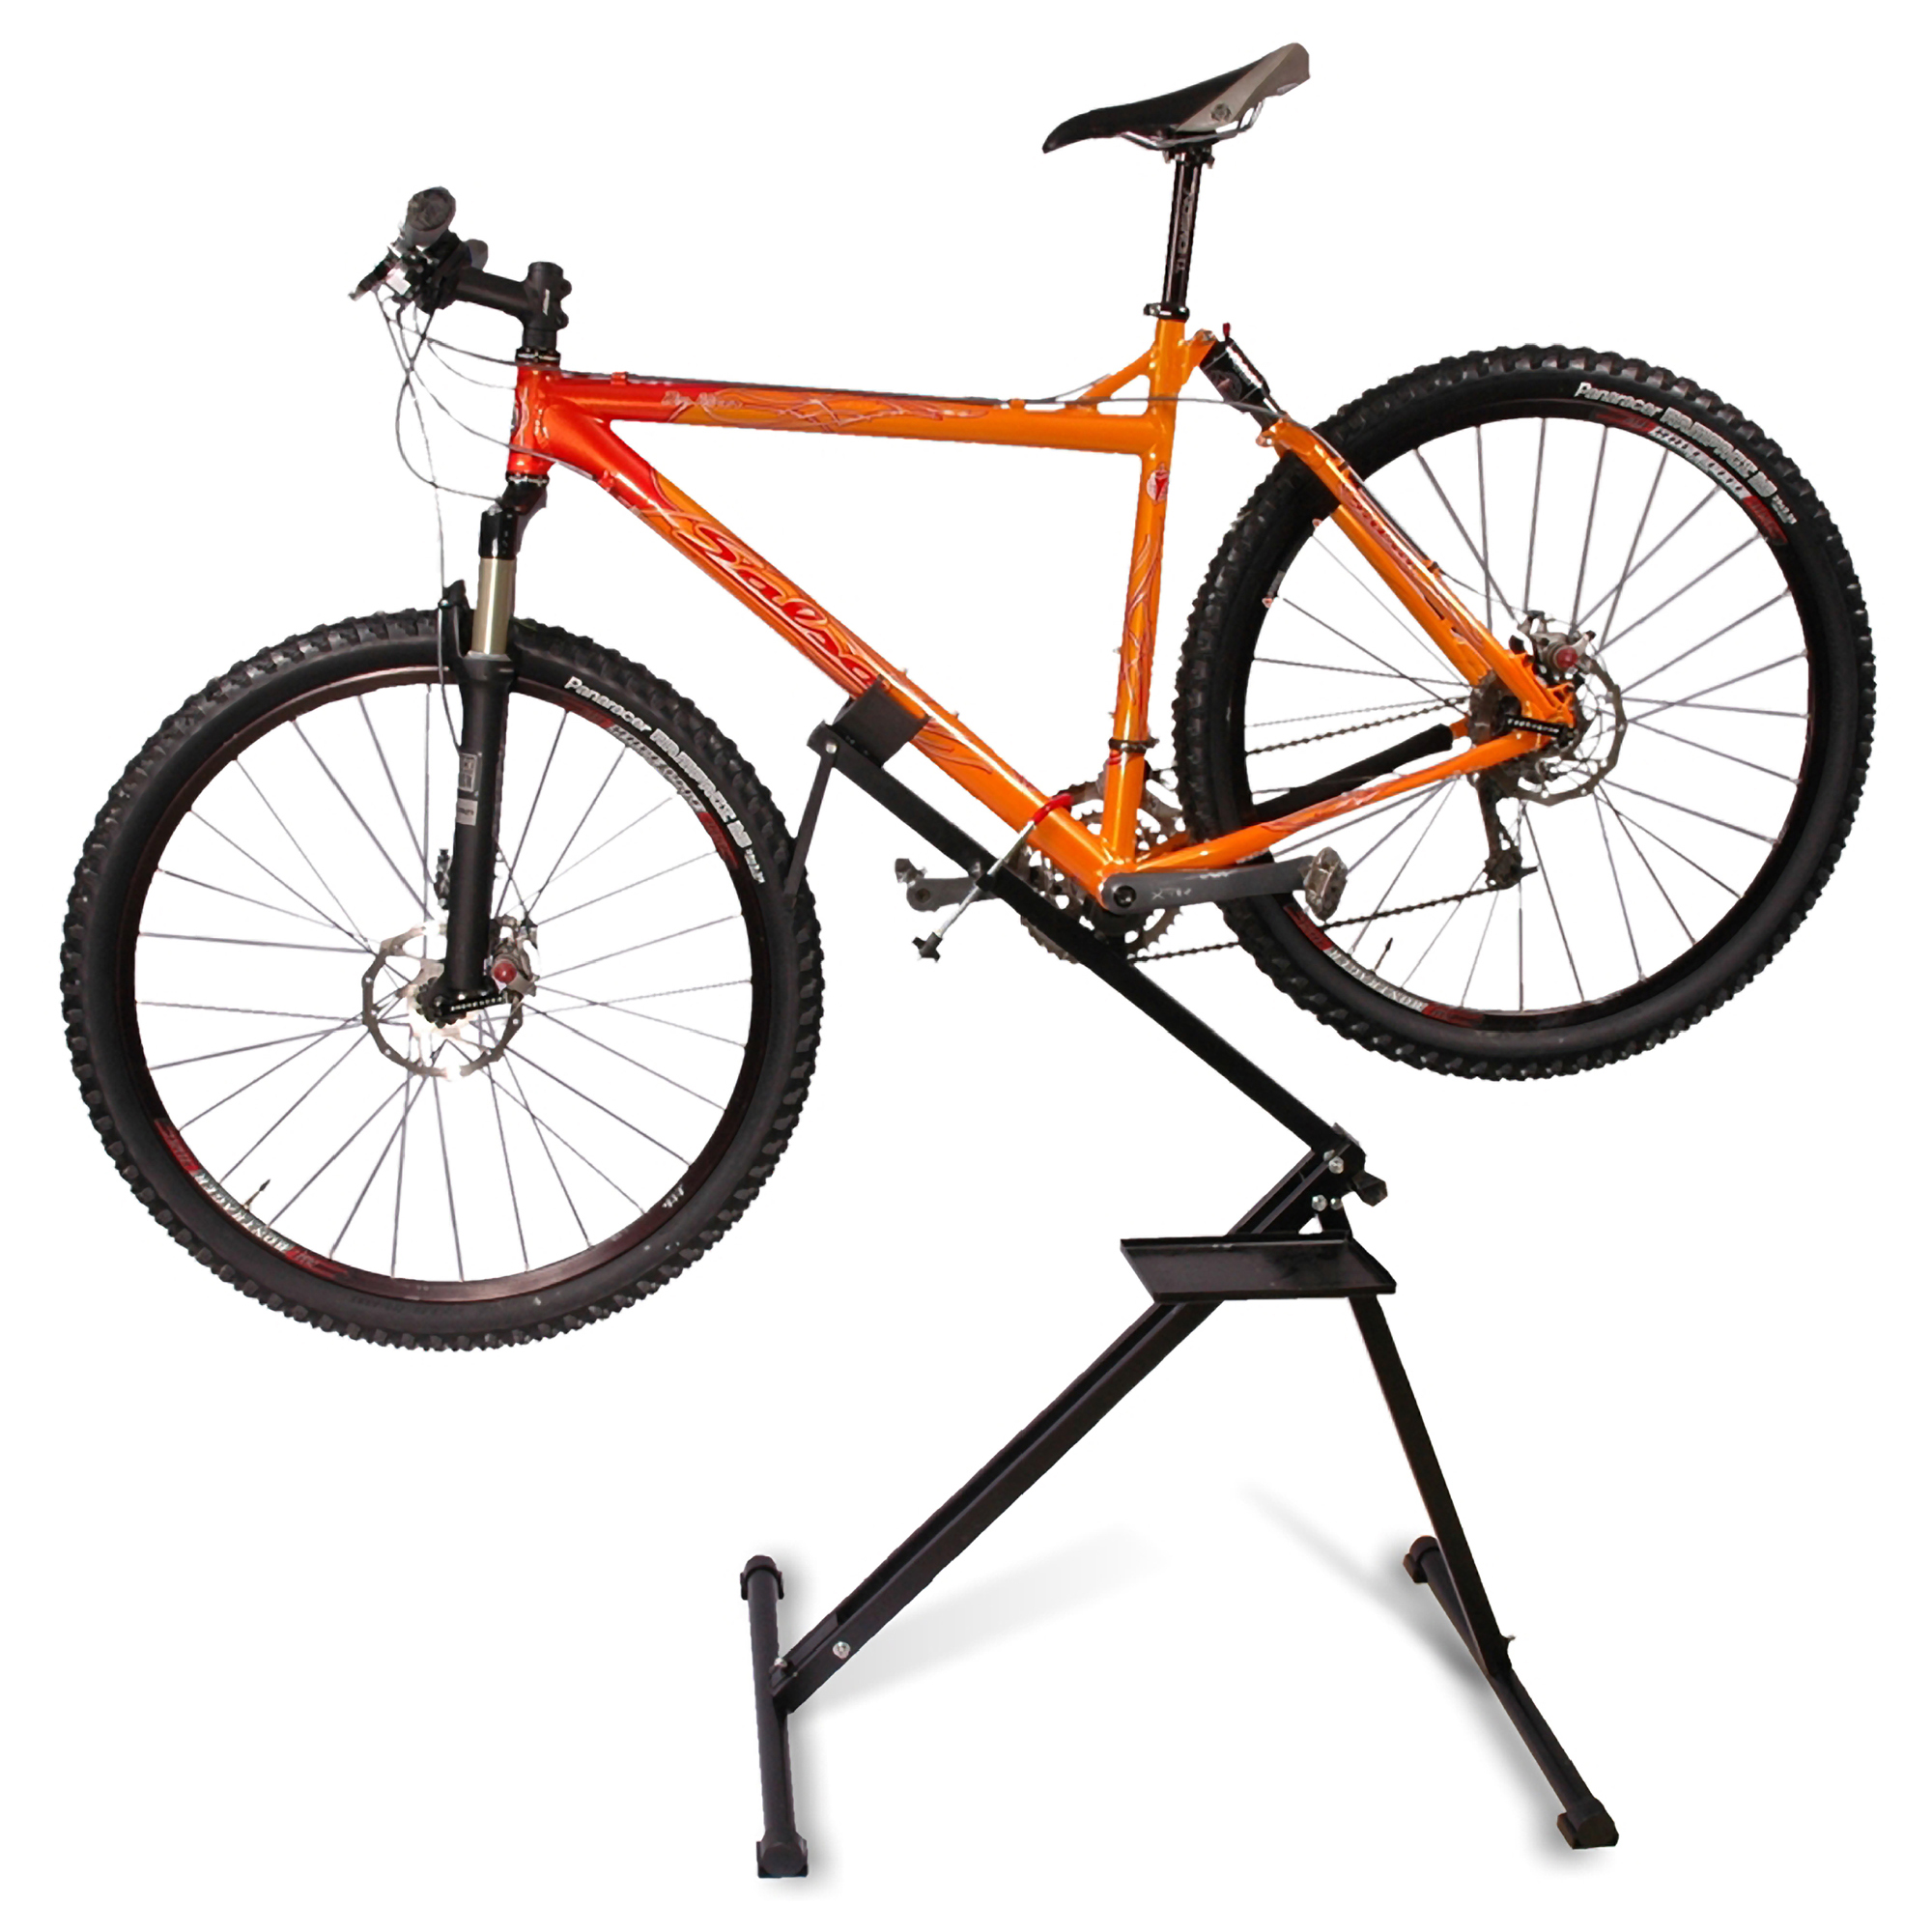 RAD Cycle EZ Fold Bicycle Repair Stand Bike Work on Bikes Like a Pro Mechanic at Home and Folds Up Easy!